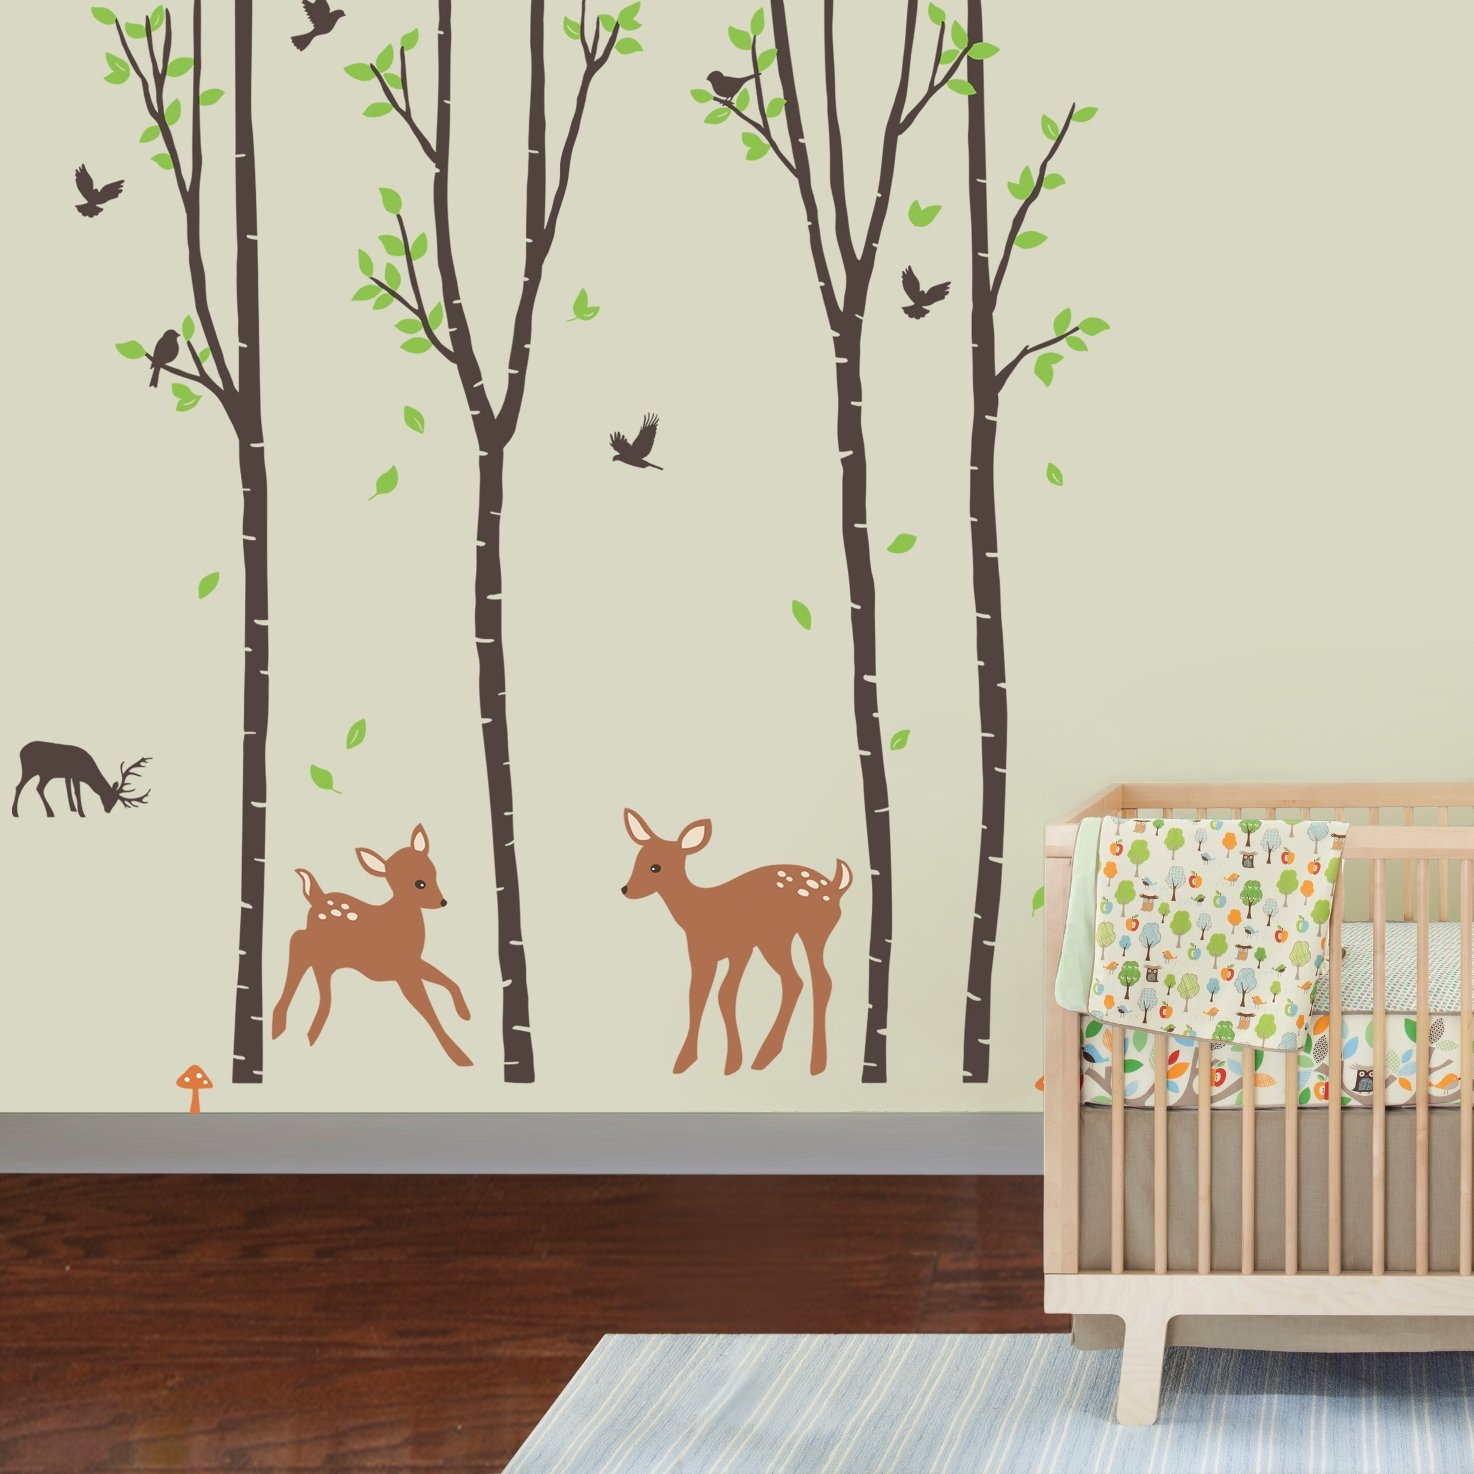 Amazon.com: Giant Wall Sticker Decals   Birch Tree Forest With Deers And  Flying Birds Baby (trees Are 6 Feet Tall): Home Improvement Part 85